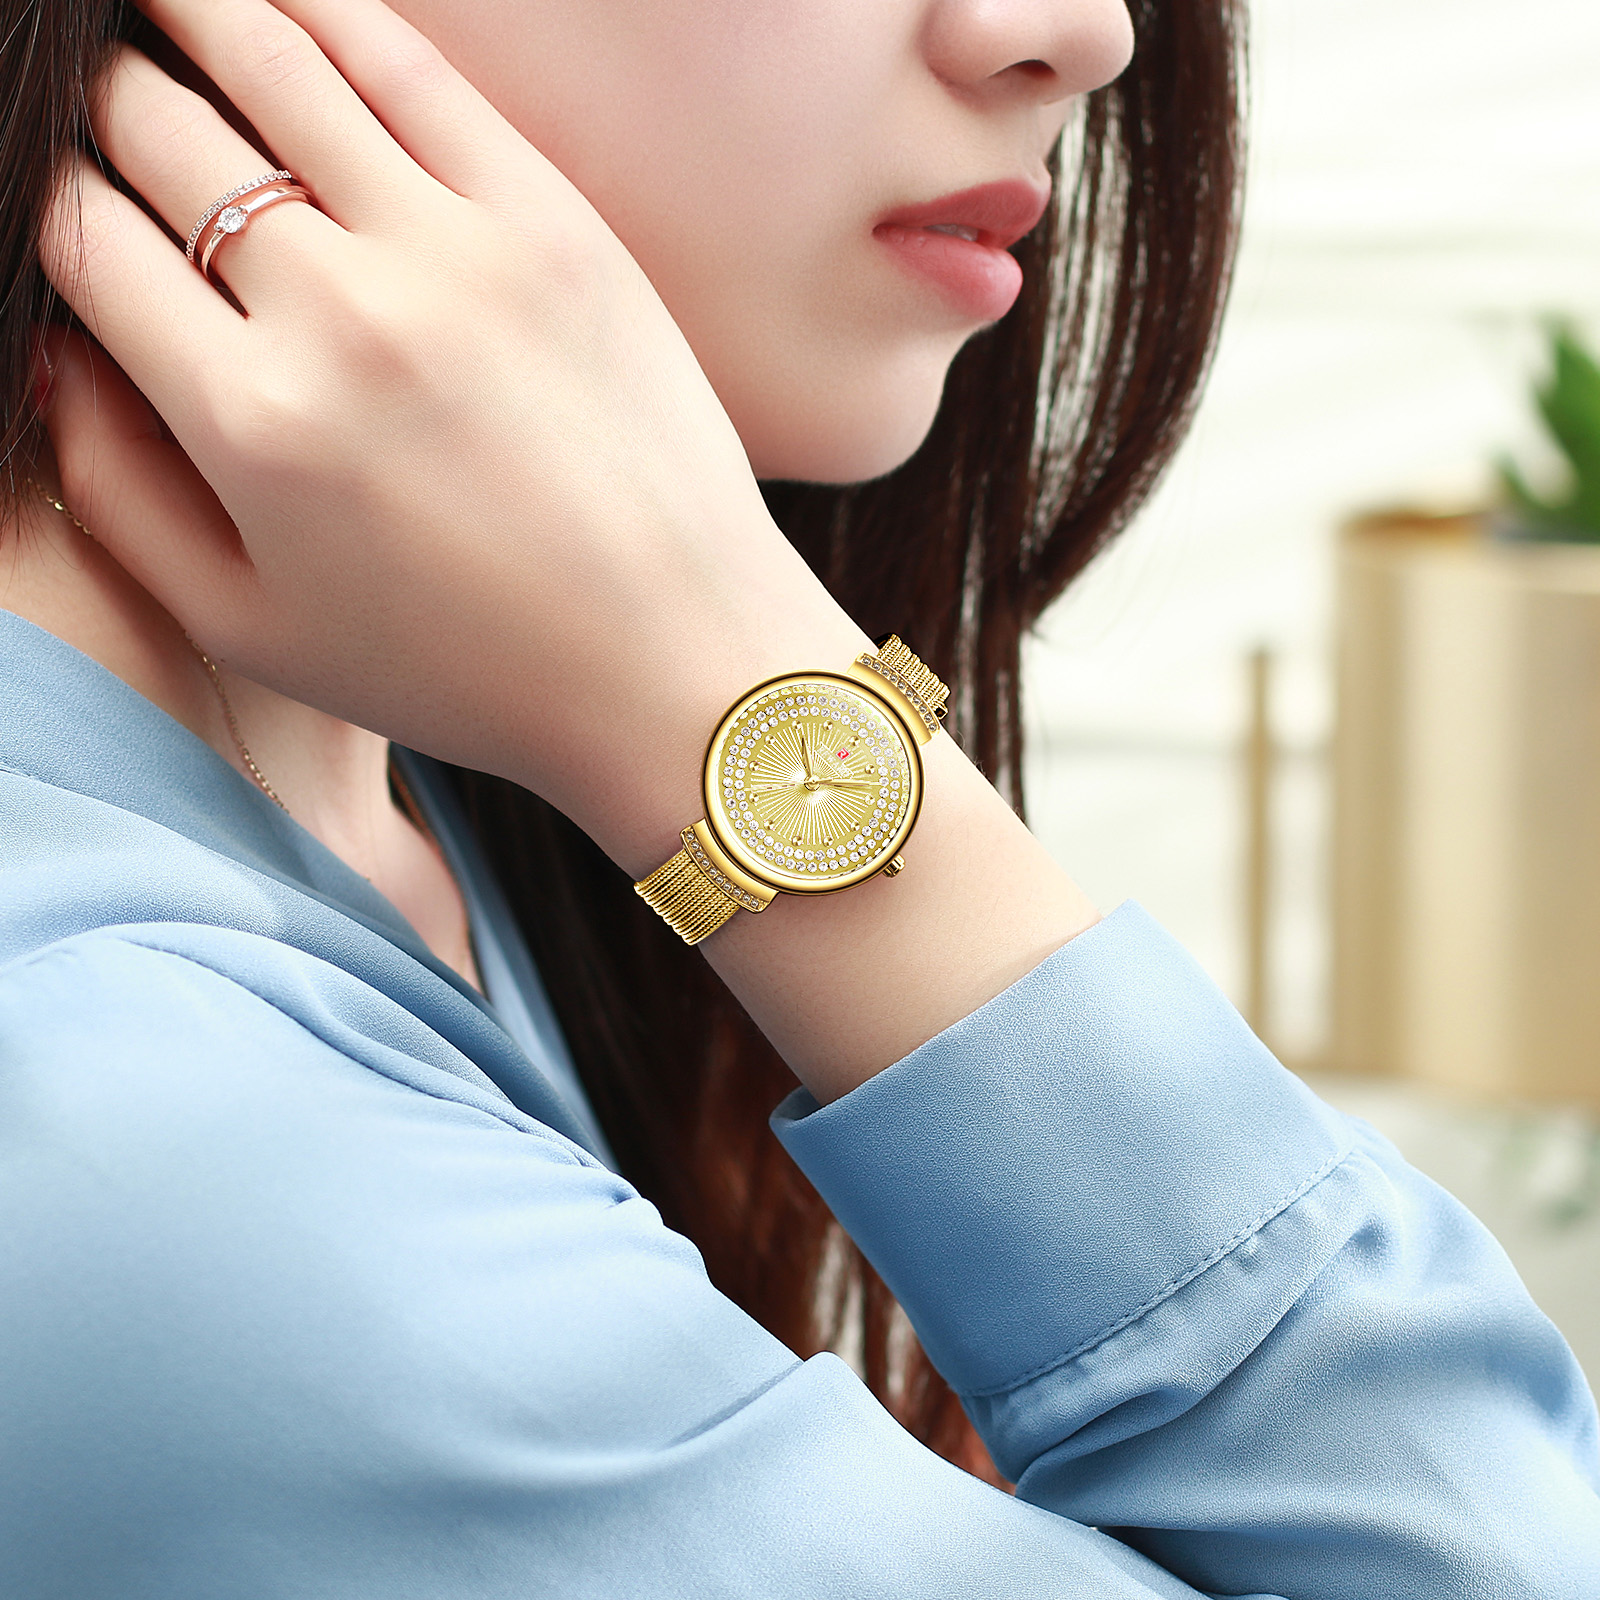 Soft Ladies Watch, luxurious, molded metal Free Shipping Sweekh.com